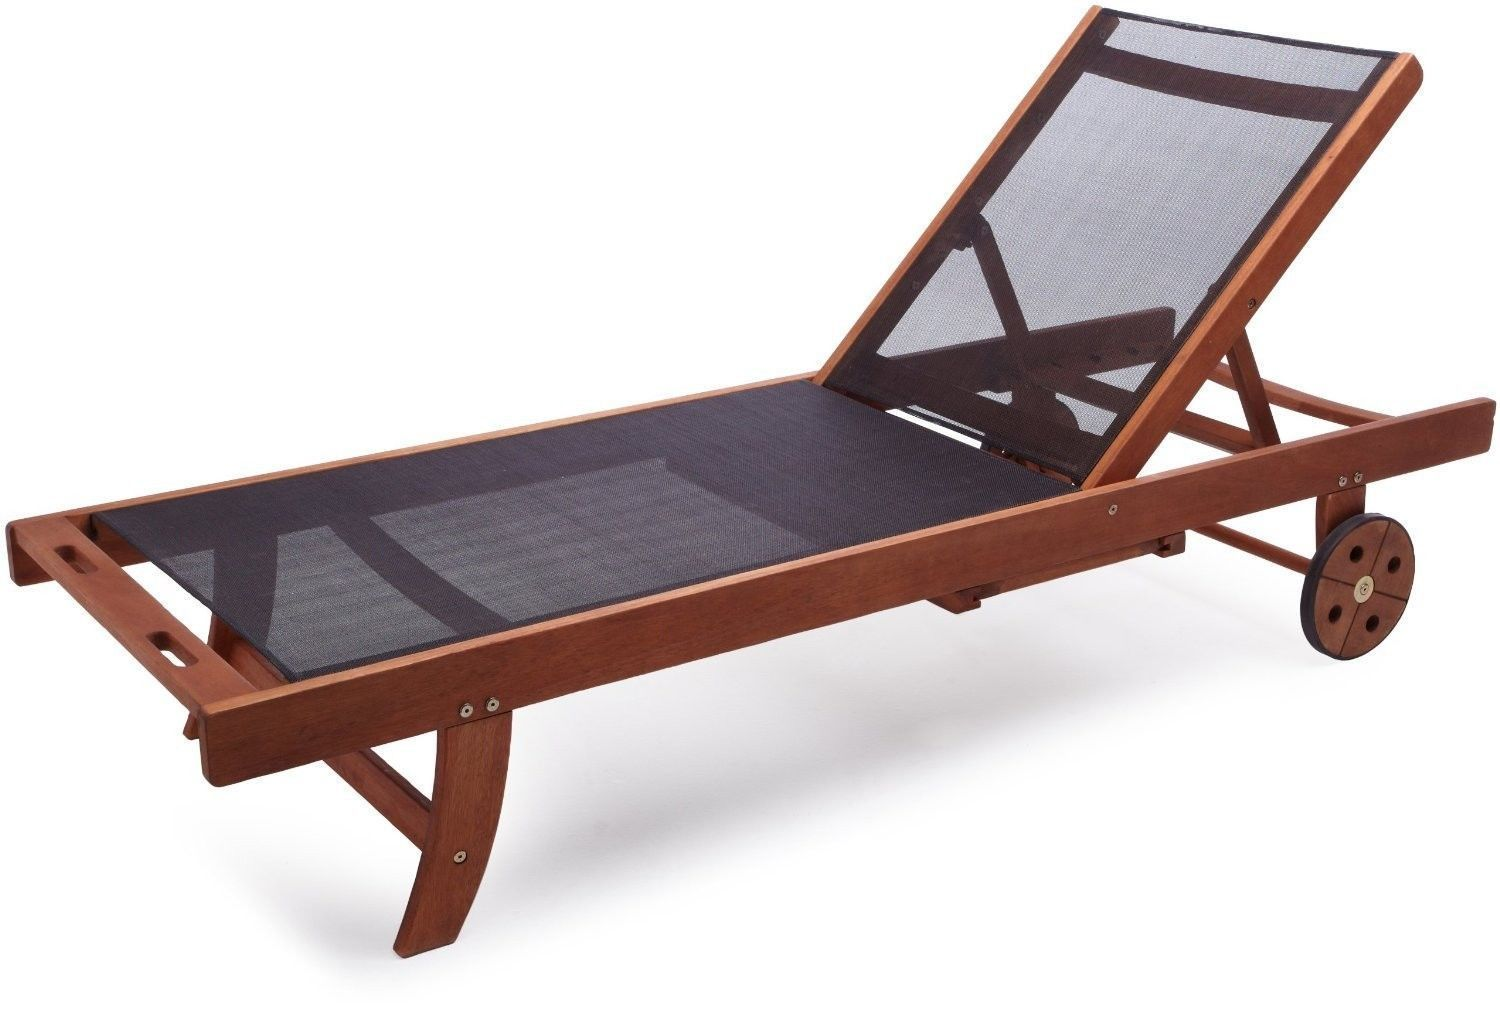 Chaise Lounge Chair Eucalyptus Wood Pool Outdoor Adjustable Fabric Durable  New | eBay